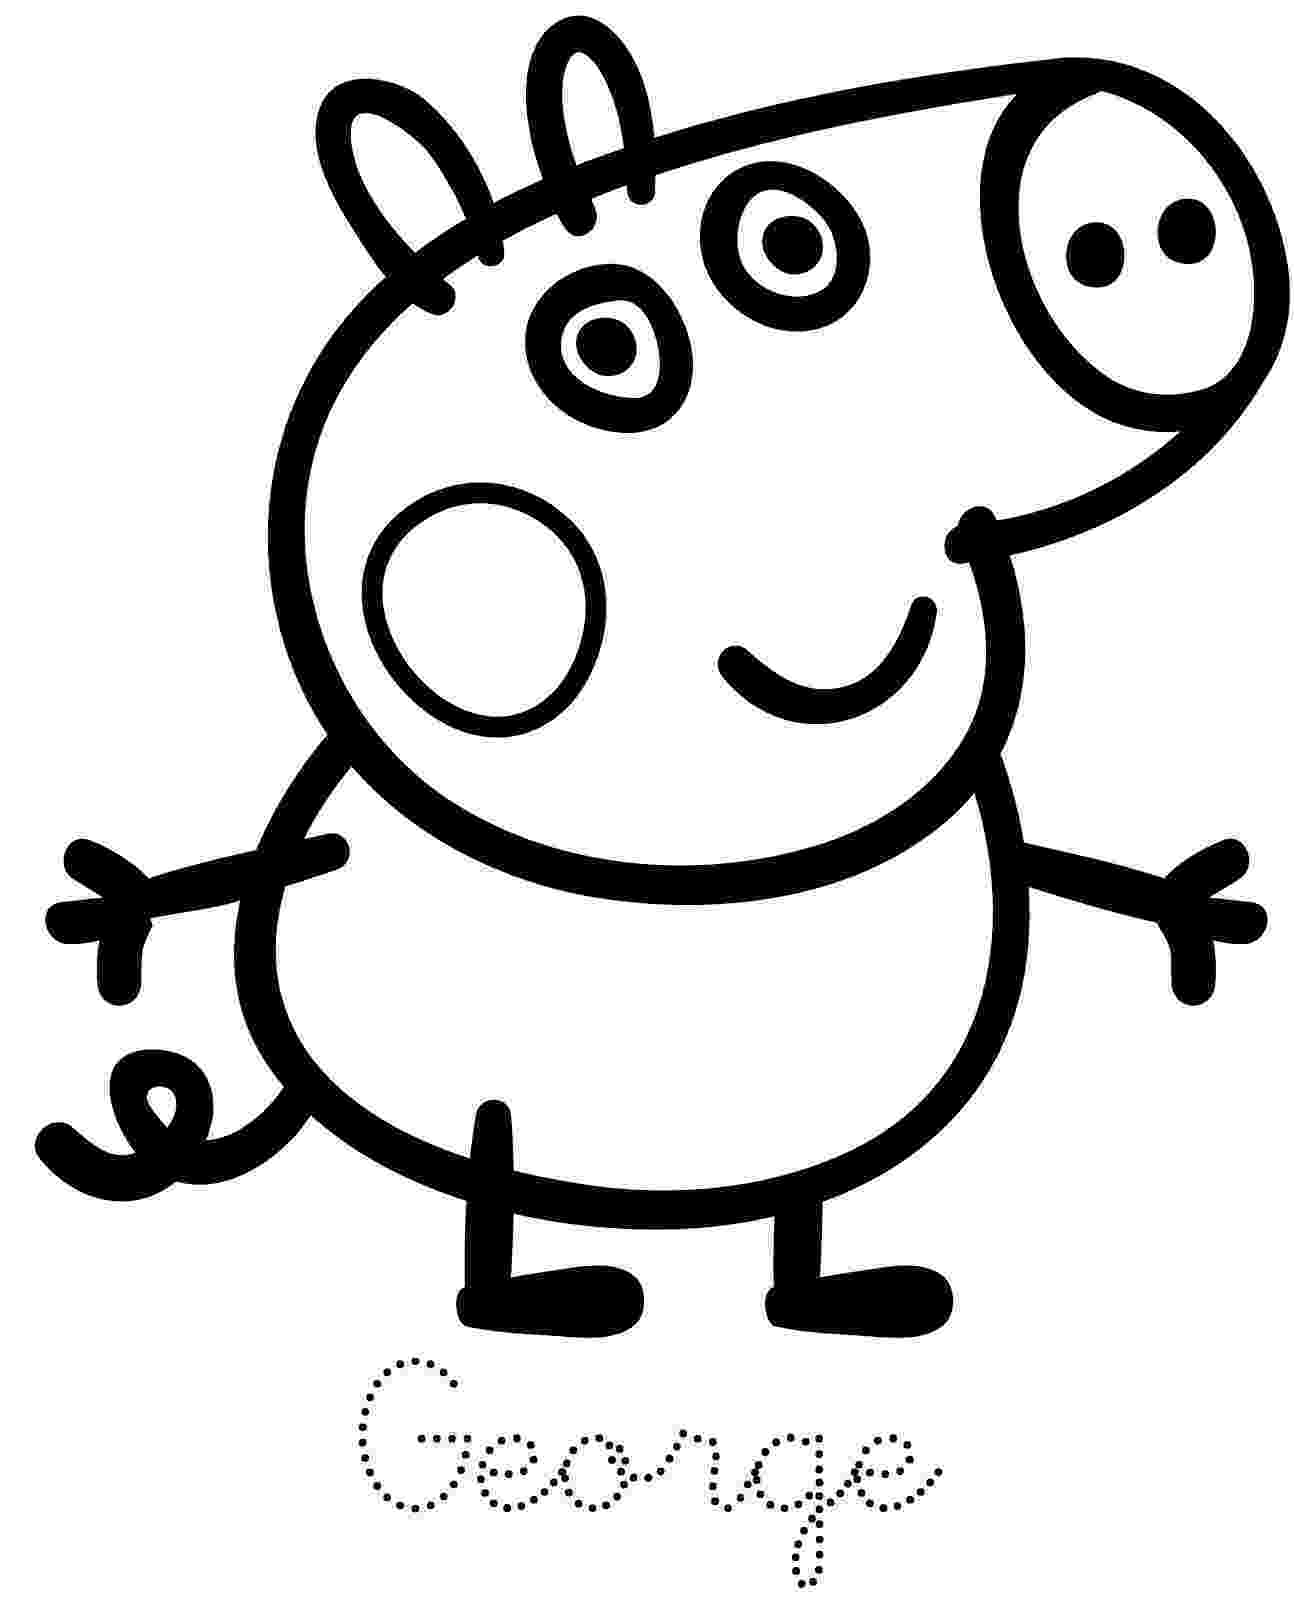 pepa pig coloring pages peppa pig george pig free printable coloring page coloring pig pepa pages